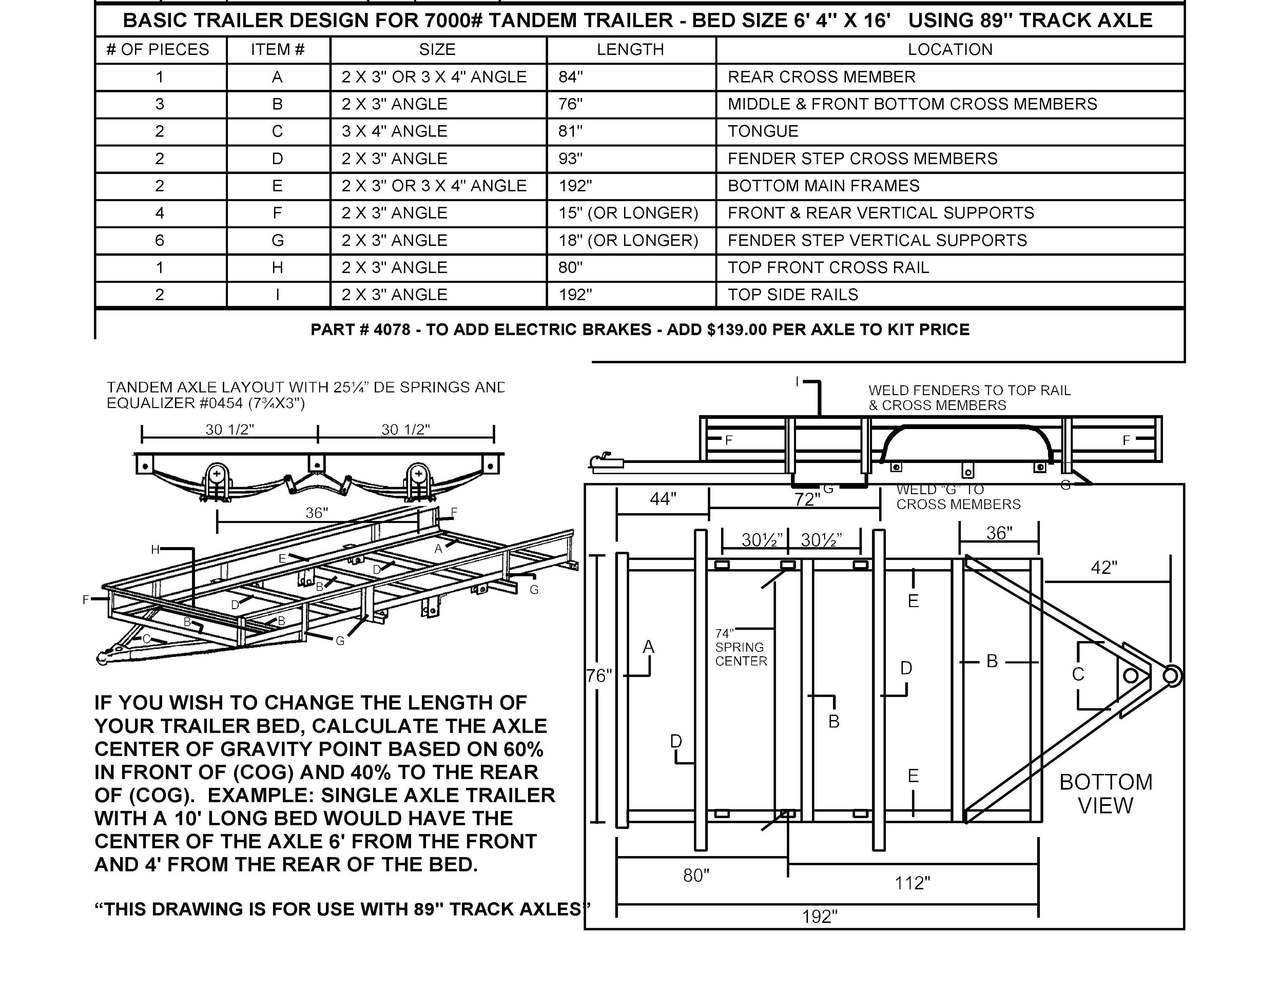 build your own utility trailer with champion trailers complete tandem axle utility trailer diagram [ 1280 x 1008 Pixel ]